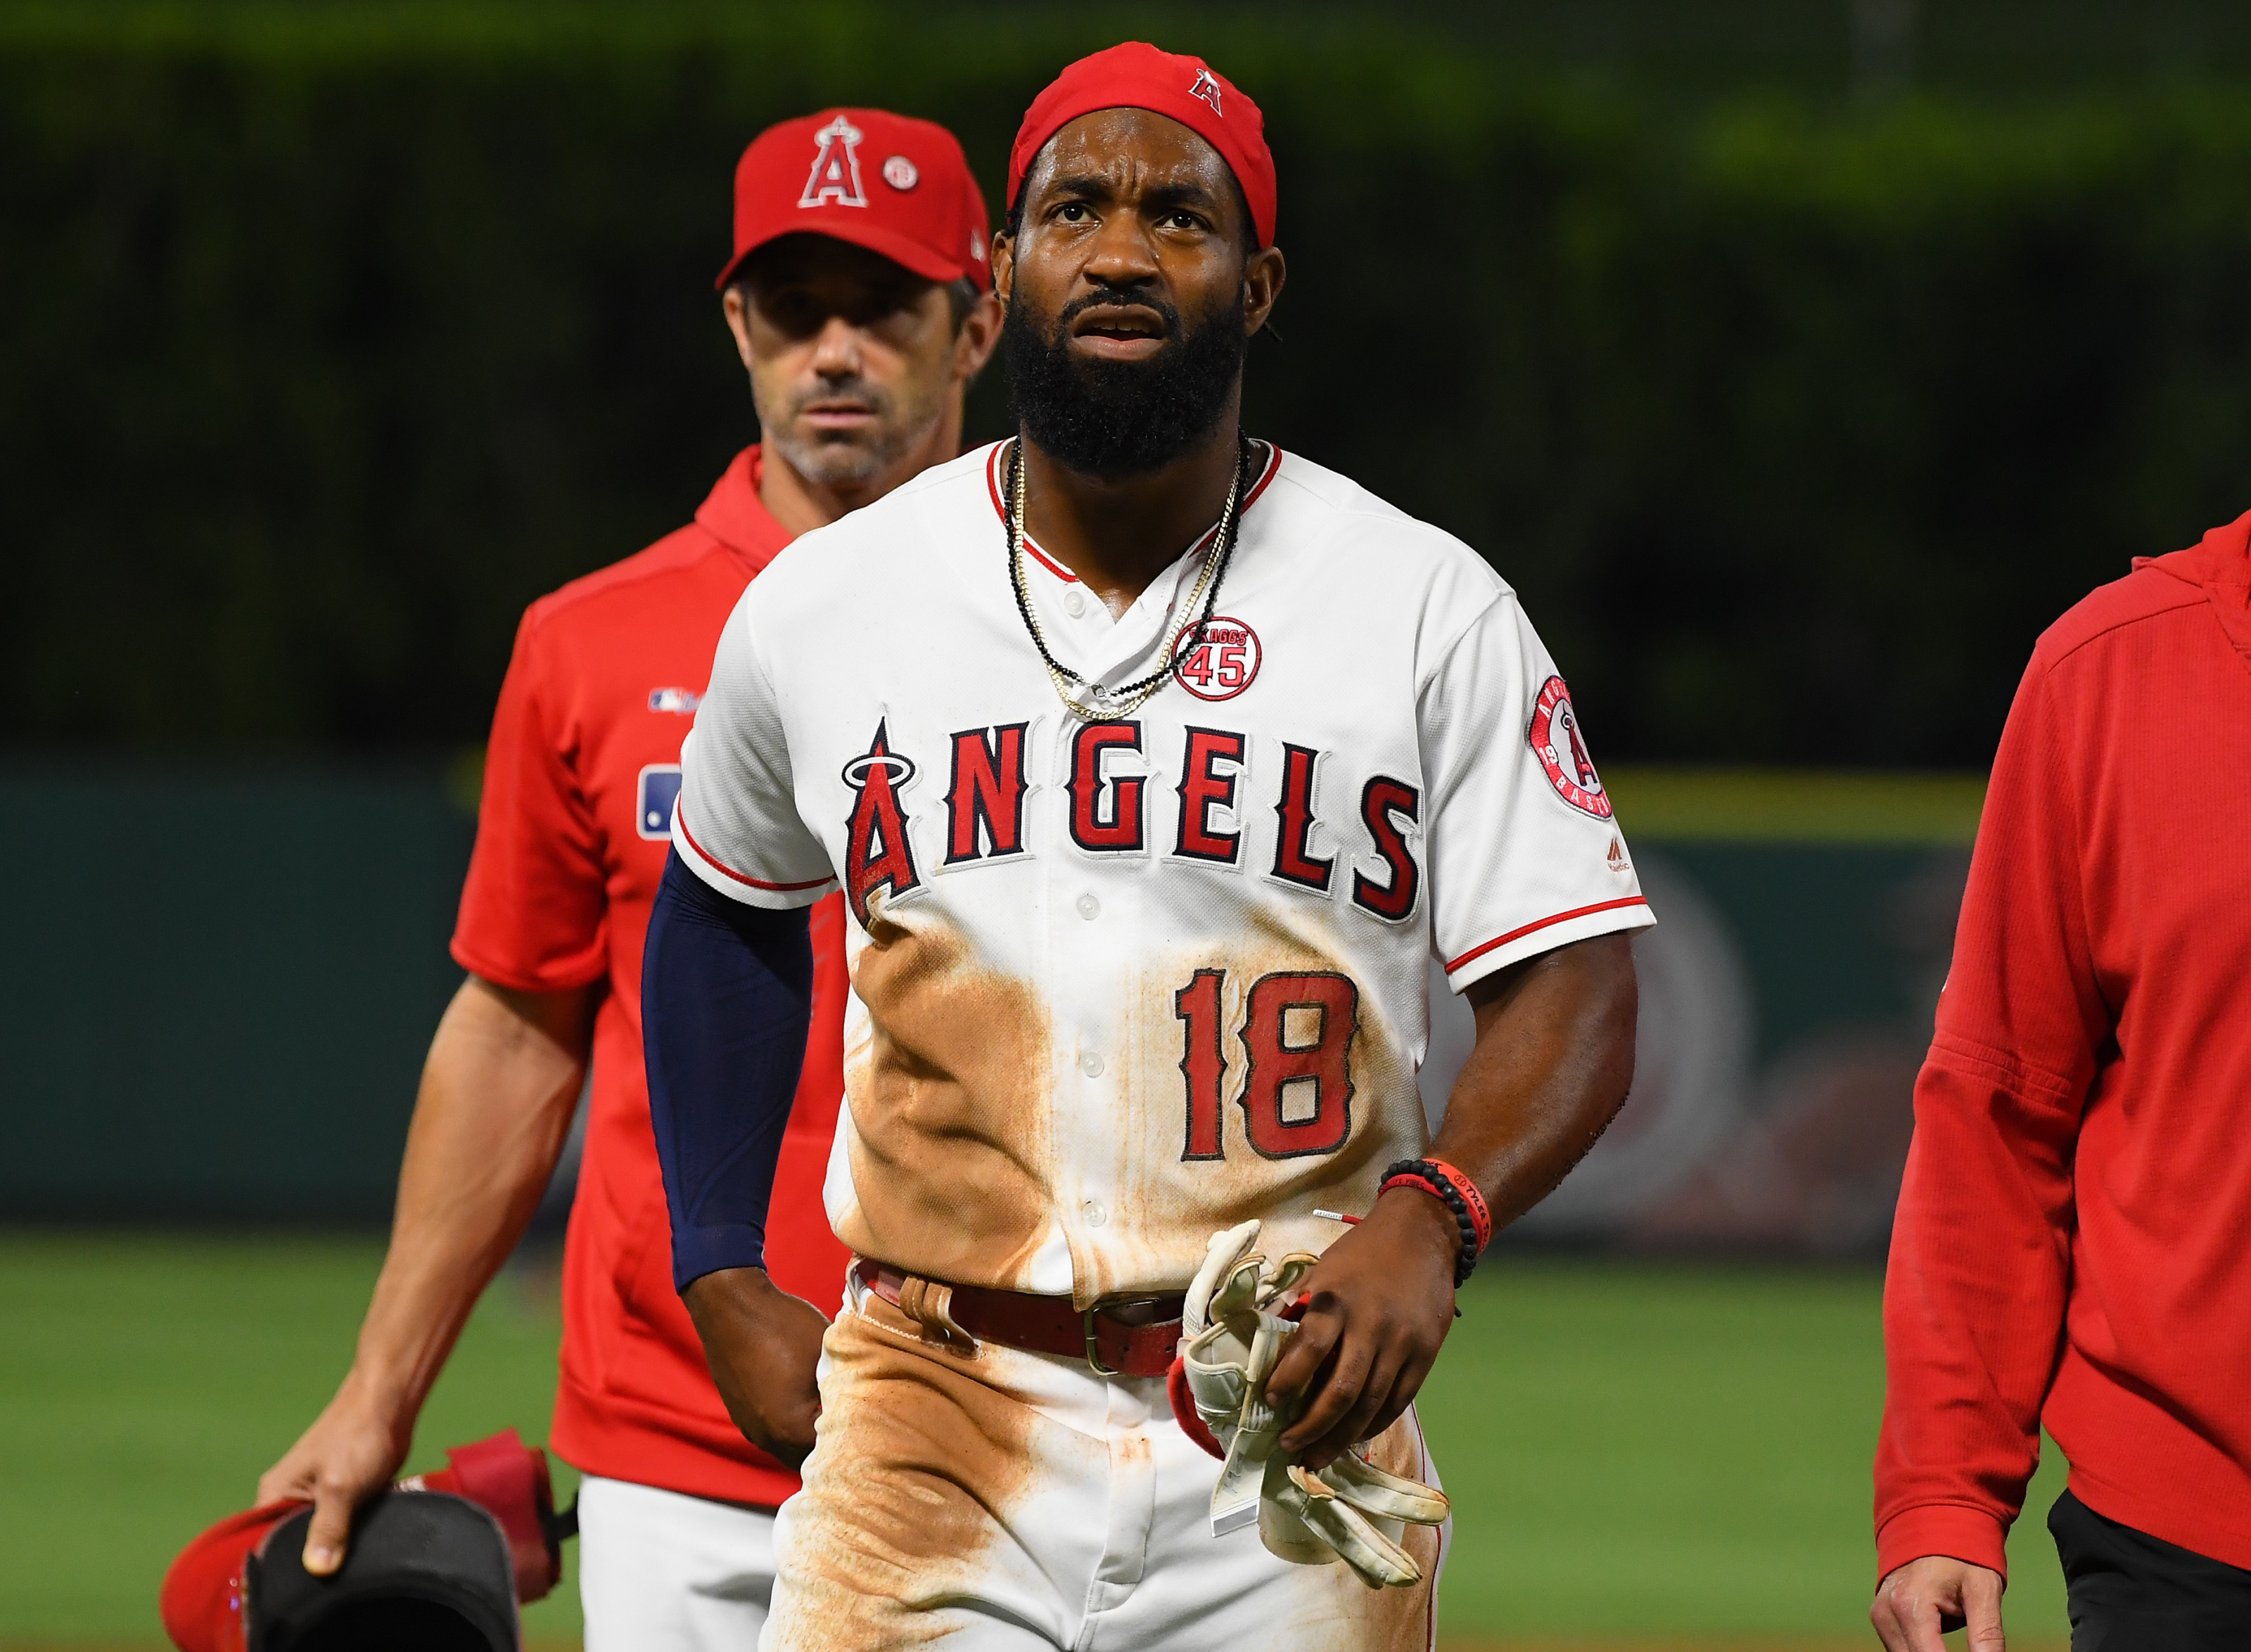 Los Angeles Angels: Brian Goodwin's going to get paid